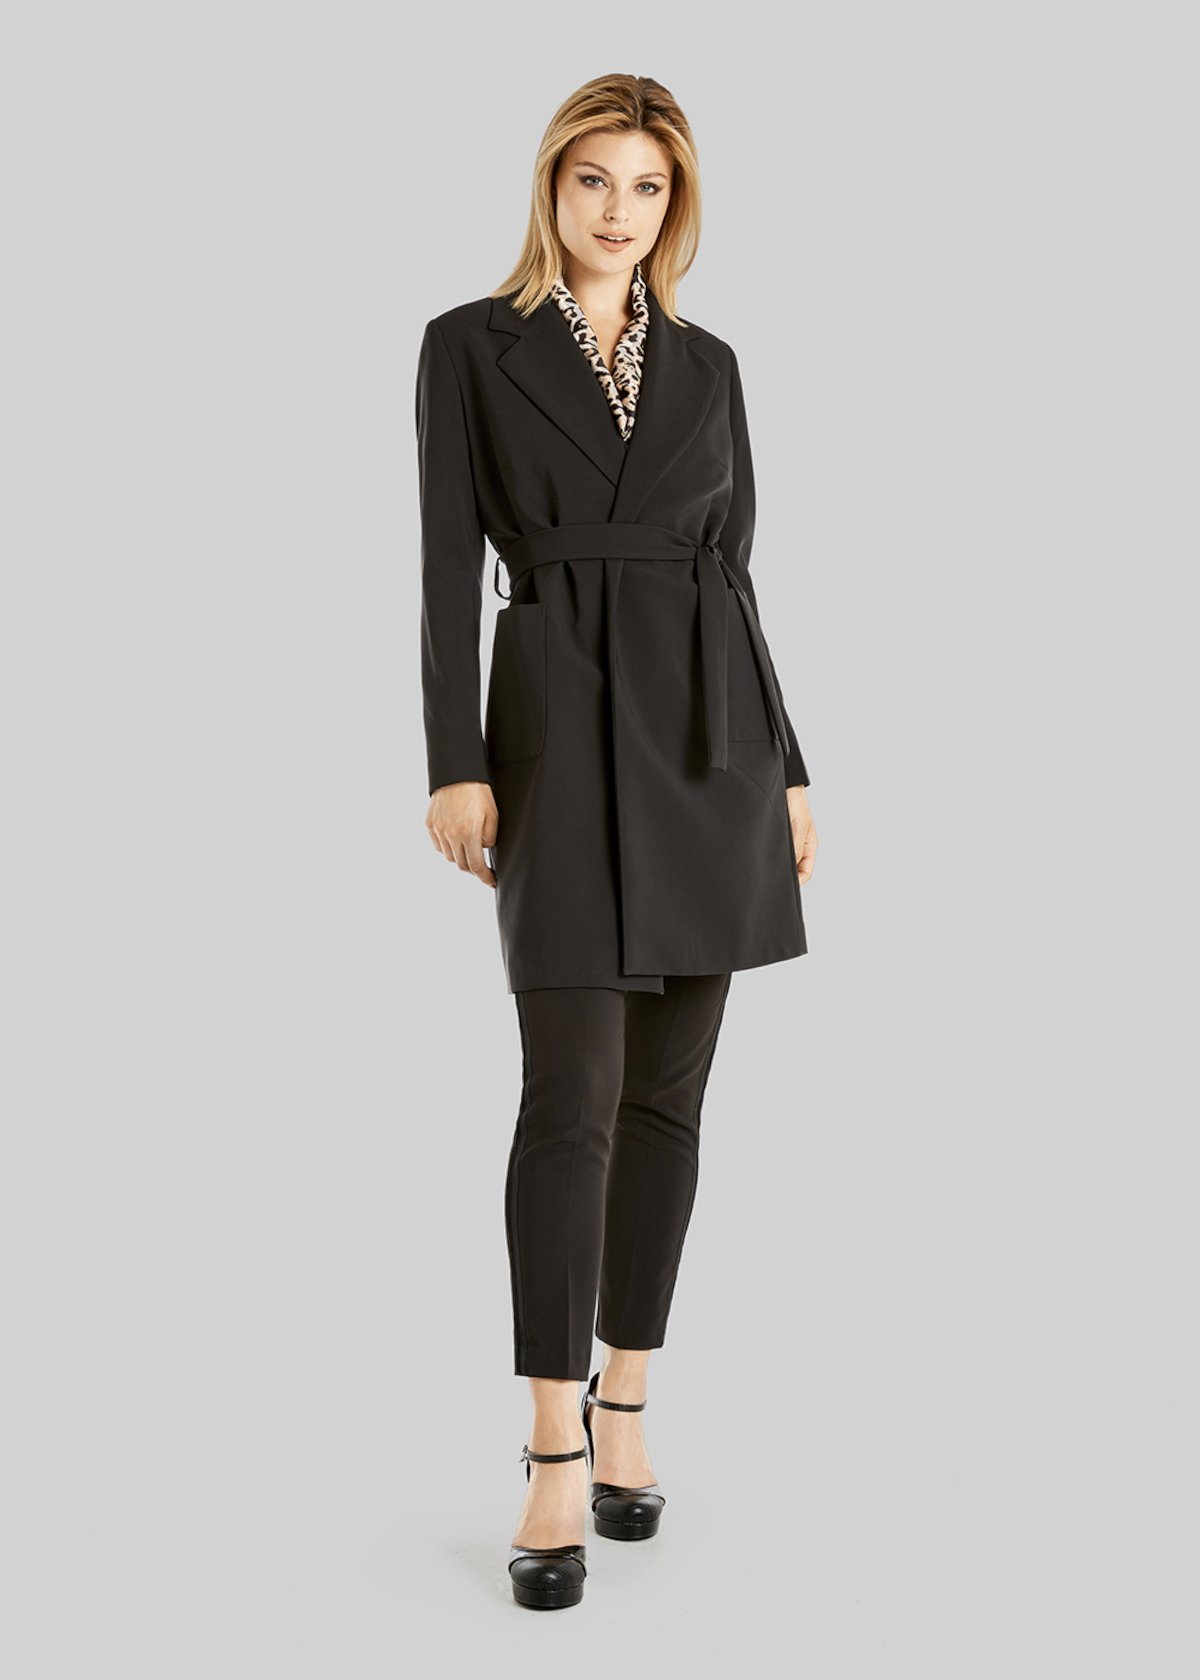 Tiger trench coat in technical fabric with lapels - Black - Woman - Category image